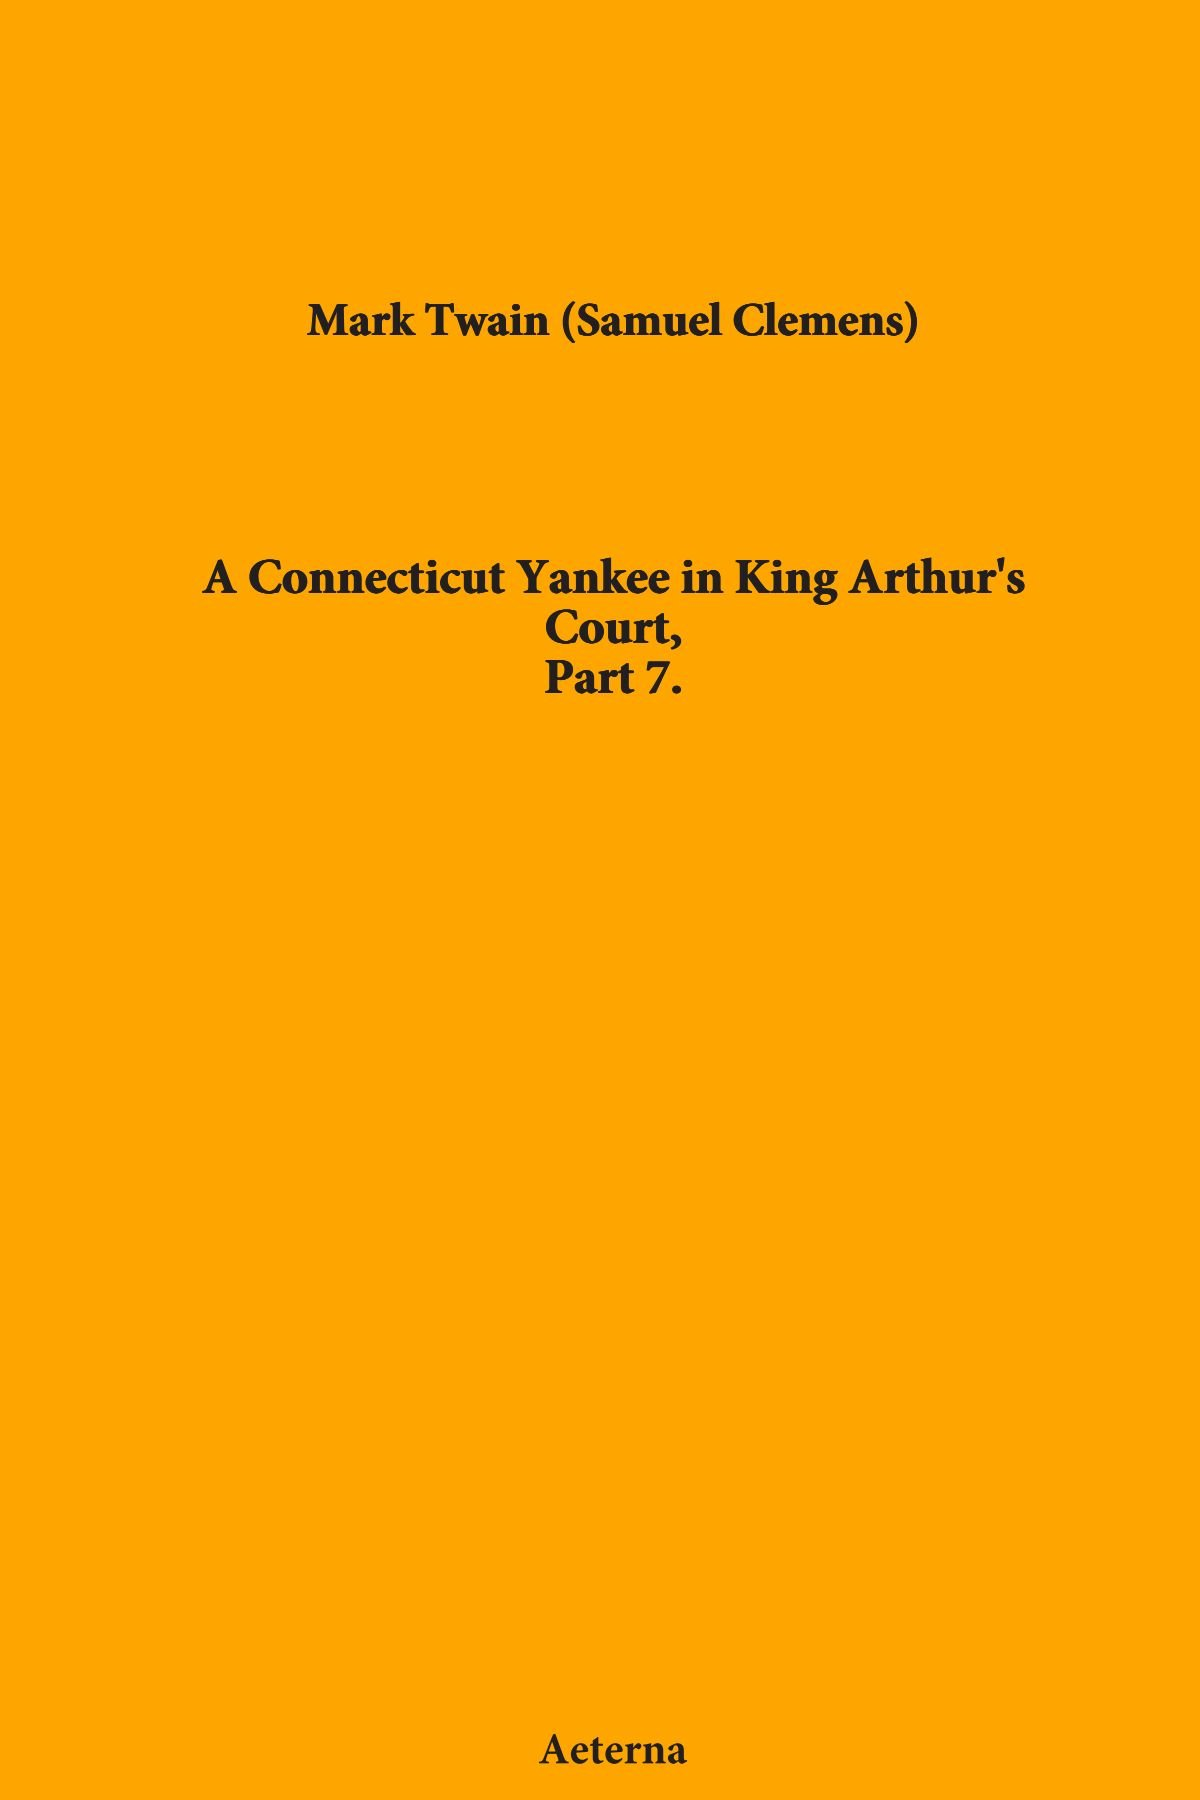 A Connecticut Yankee in King Arthur's Court, Part 7. PDF